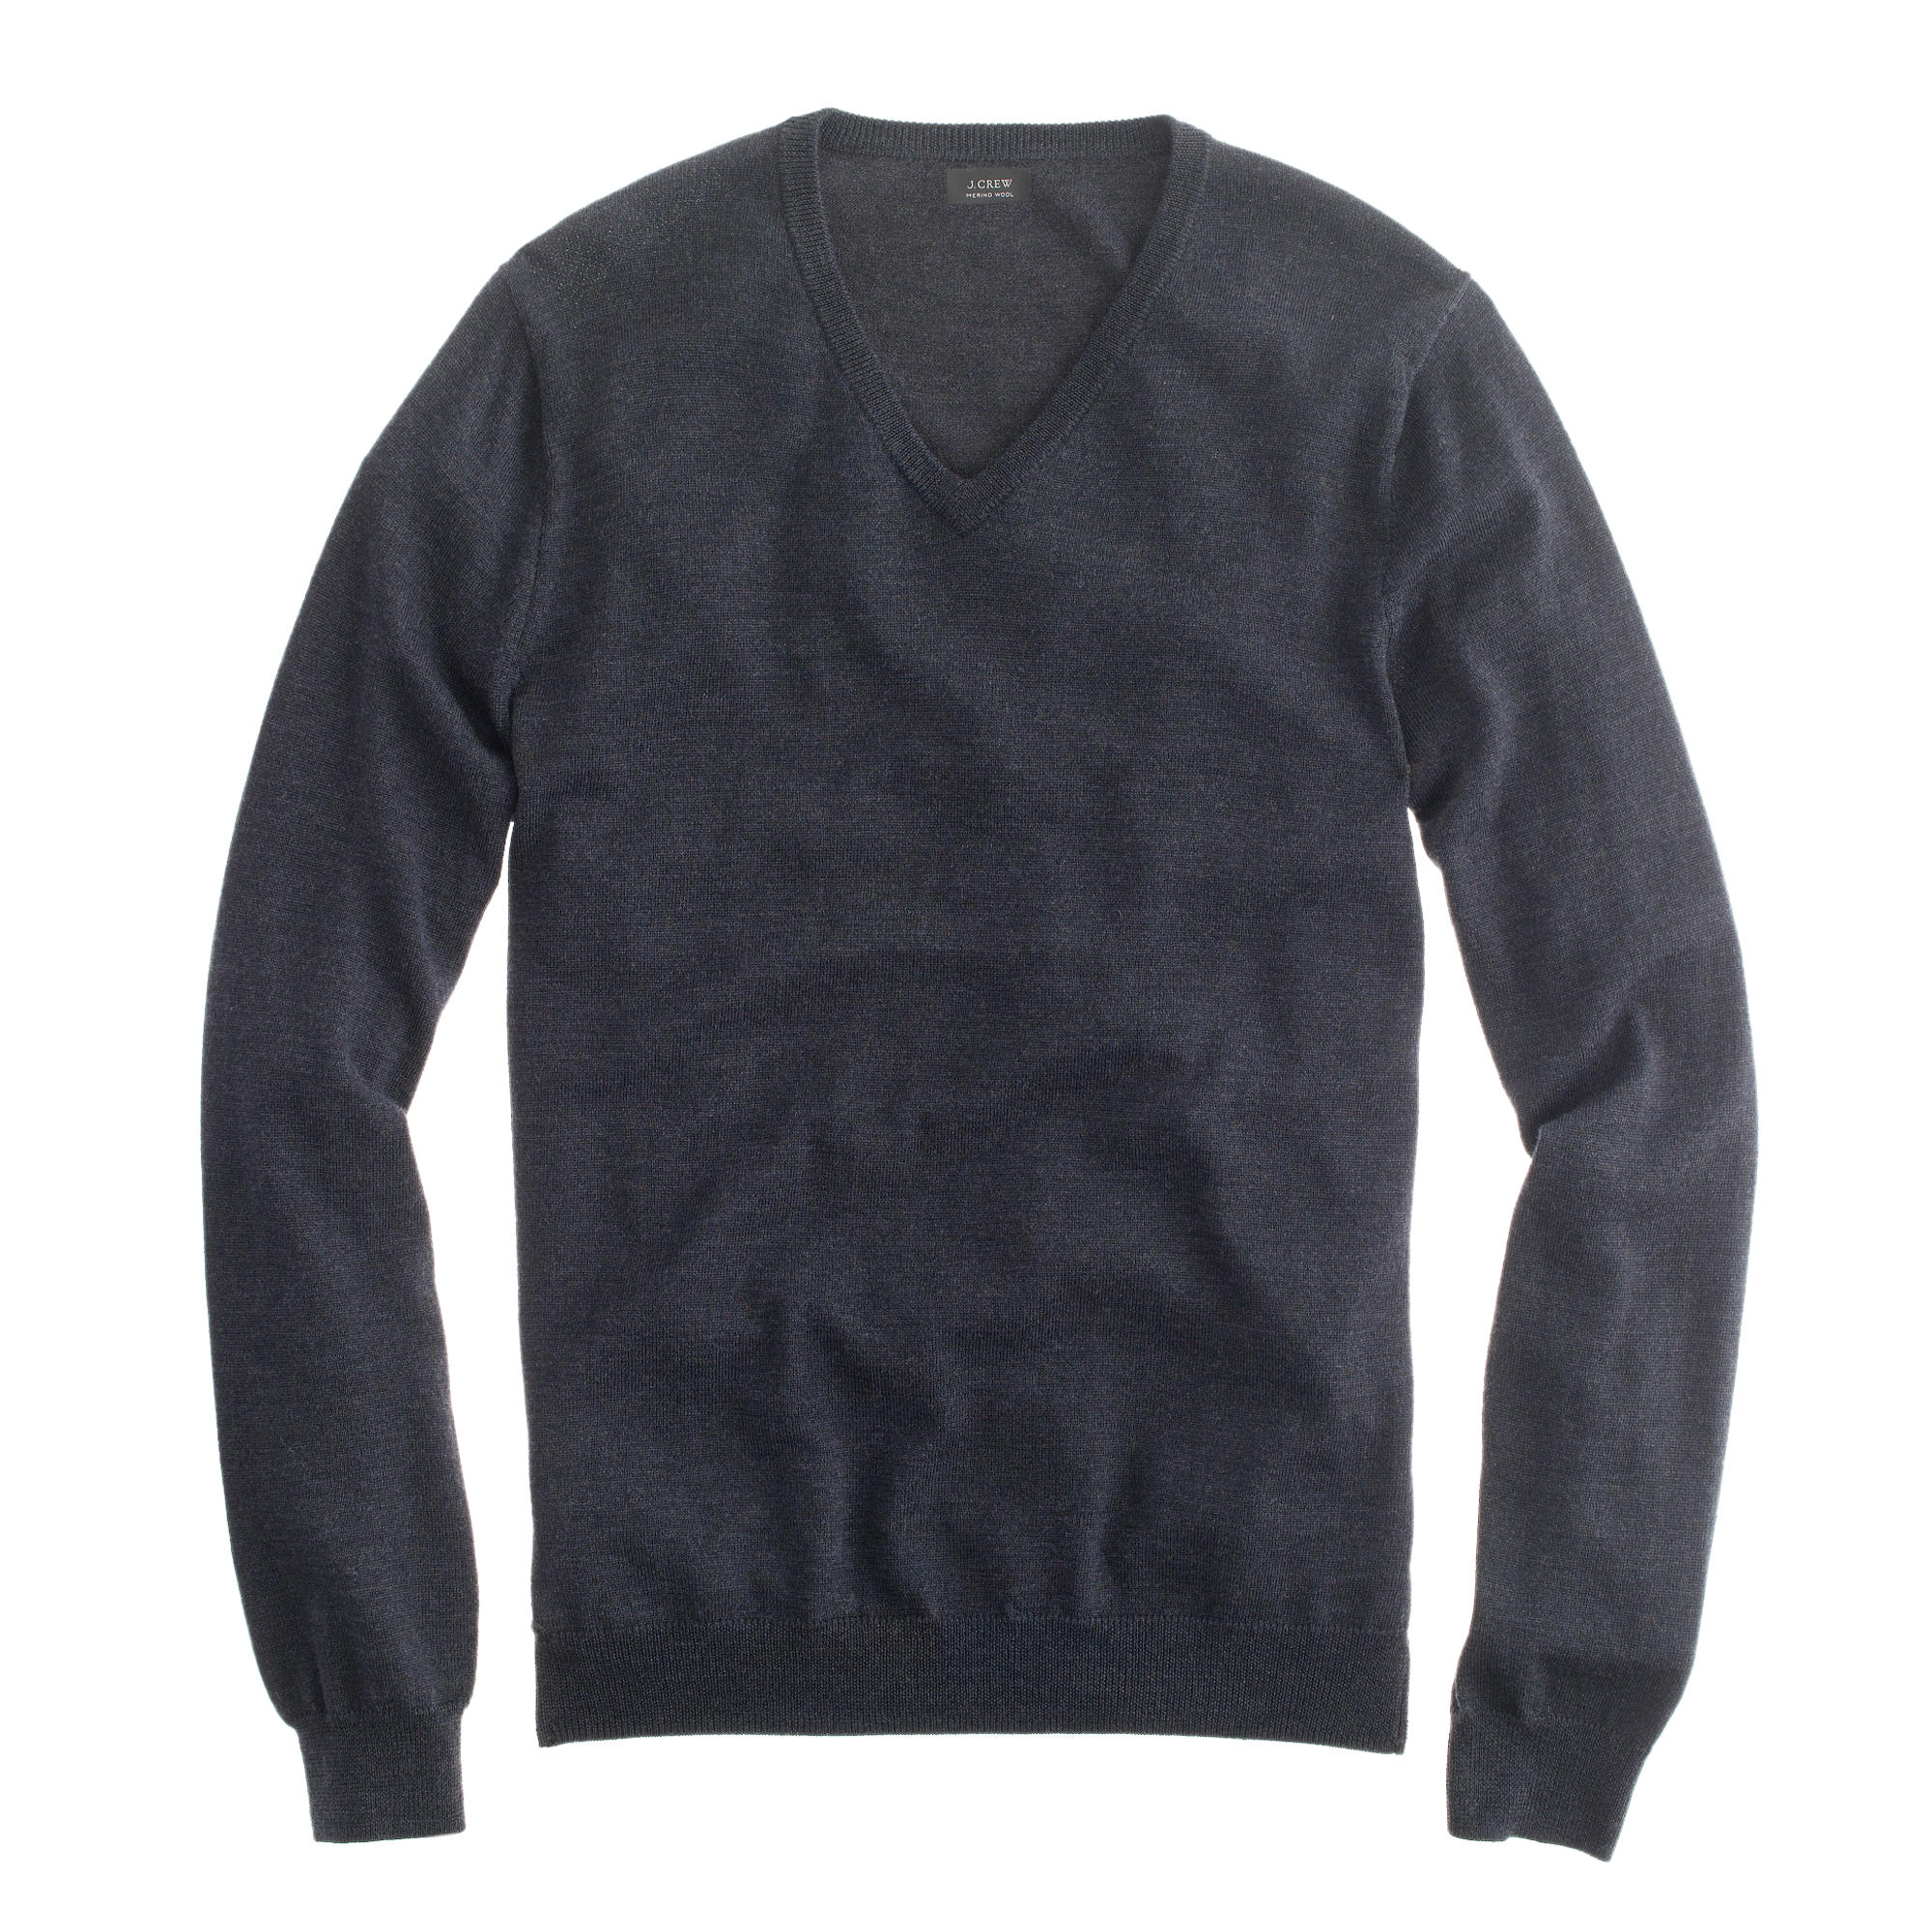 Wool is the hair derived from animals including sheep, goats, and rabbits just to name some of the more popular types. A wool knit is formulated when the hair is spun into yarn and then interlooped with other yarns creating a breathable and often lightweight fabric suitable for sweaters or cardigans.